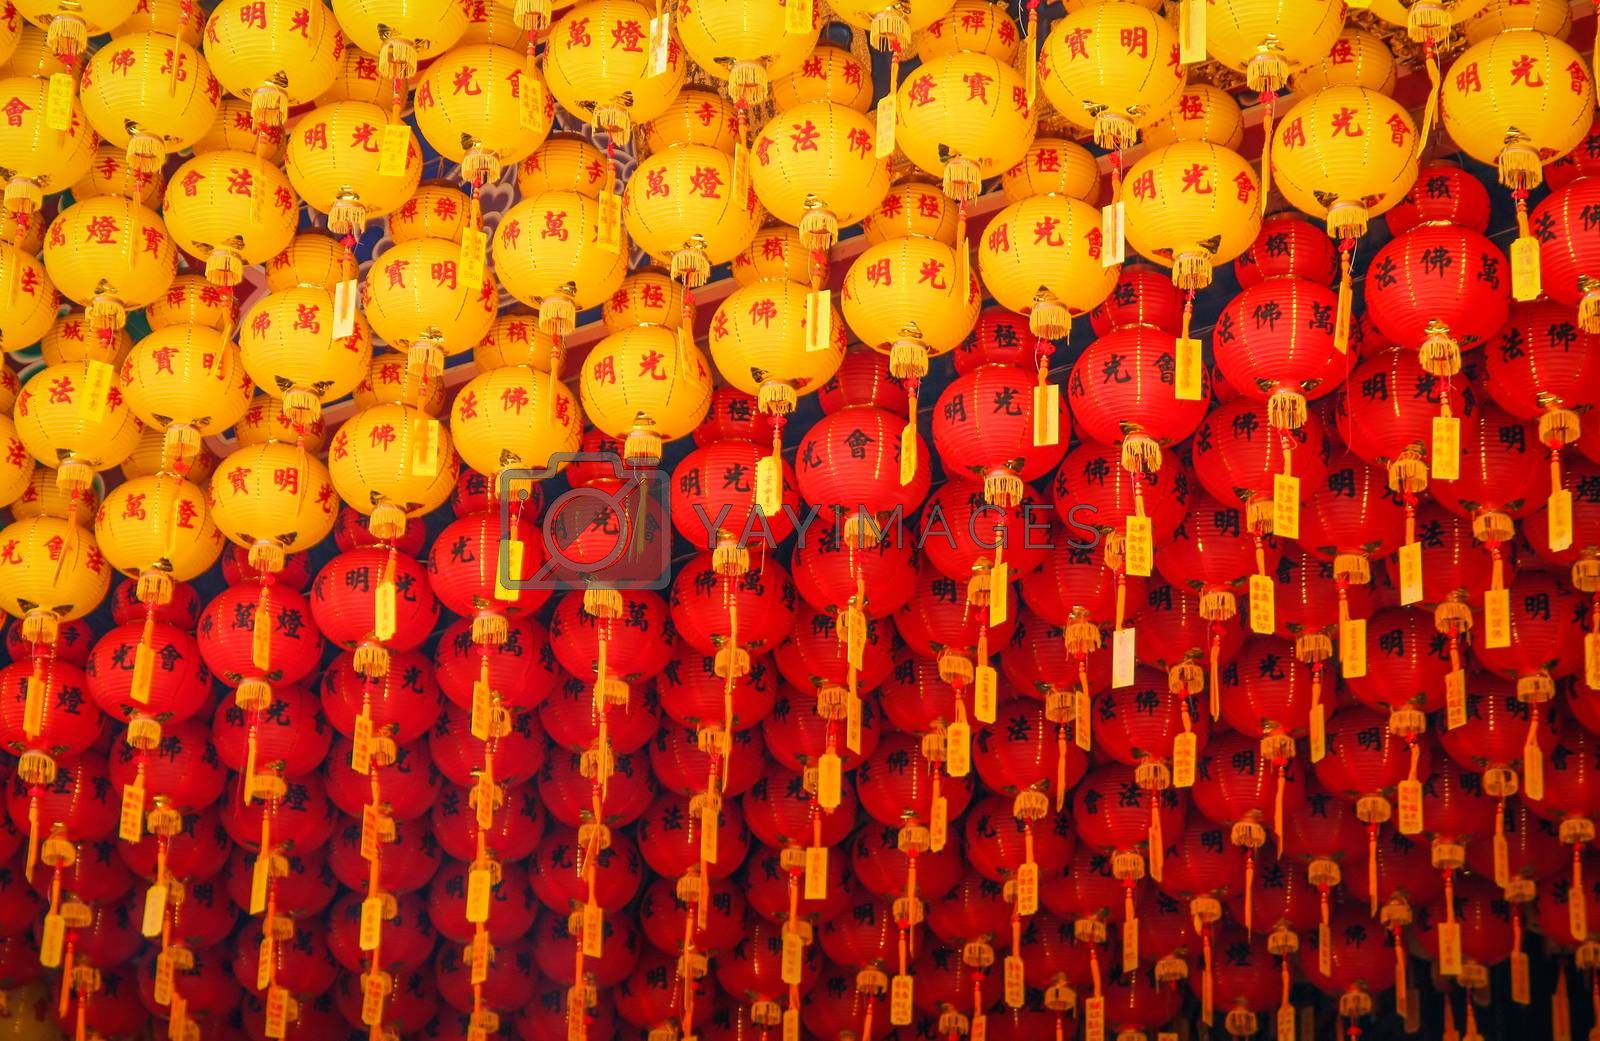 Red and Yellow Lanterns in Kek Lok Si temple in Penang, Malaysia